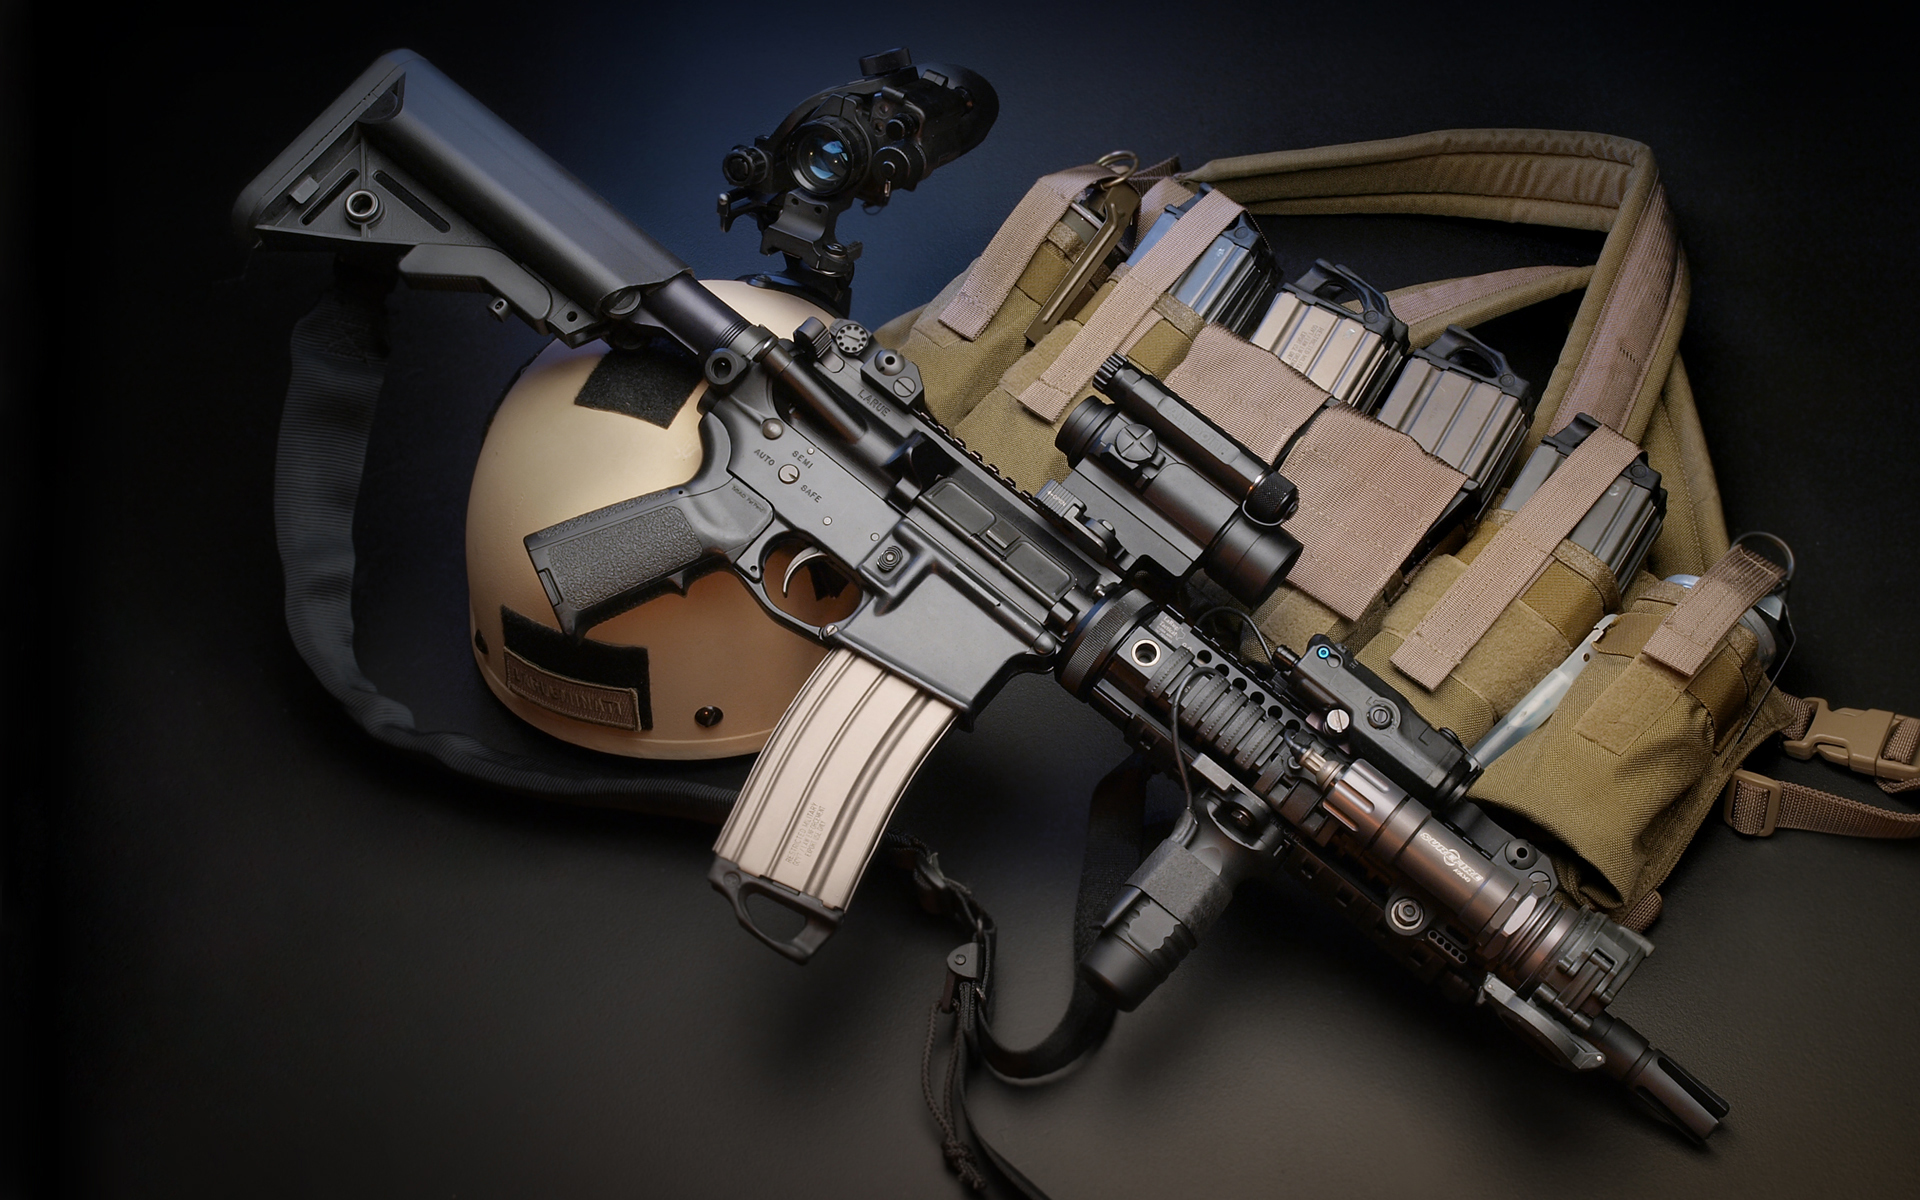 Assault Rifle Rifles M4 Weapon Gun Military Police F Wallpaper